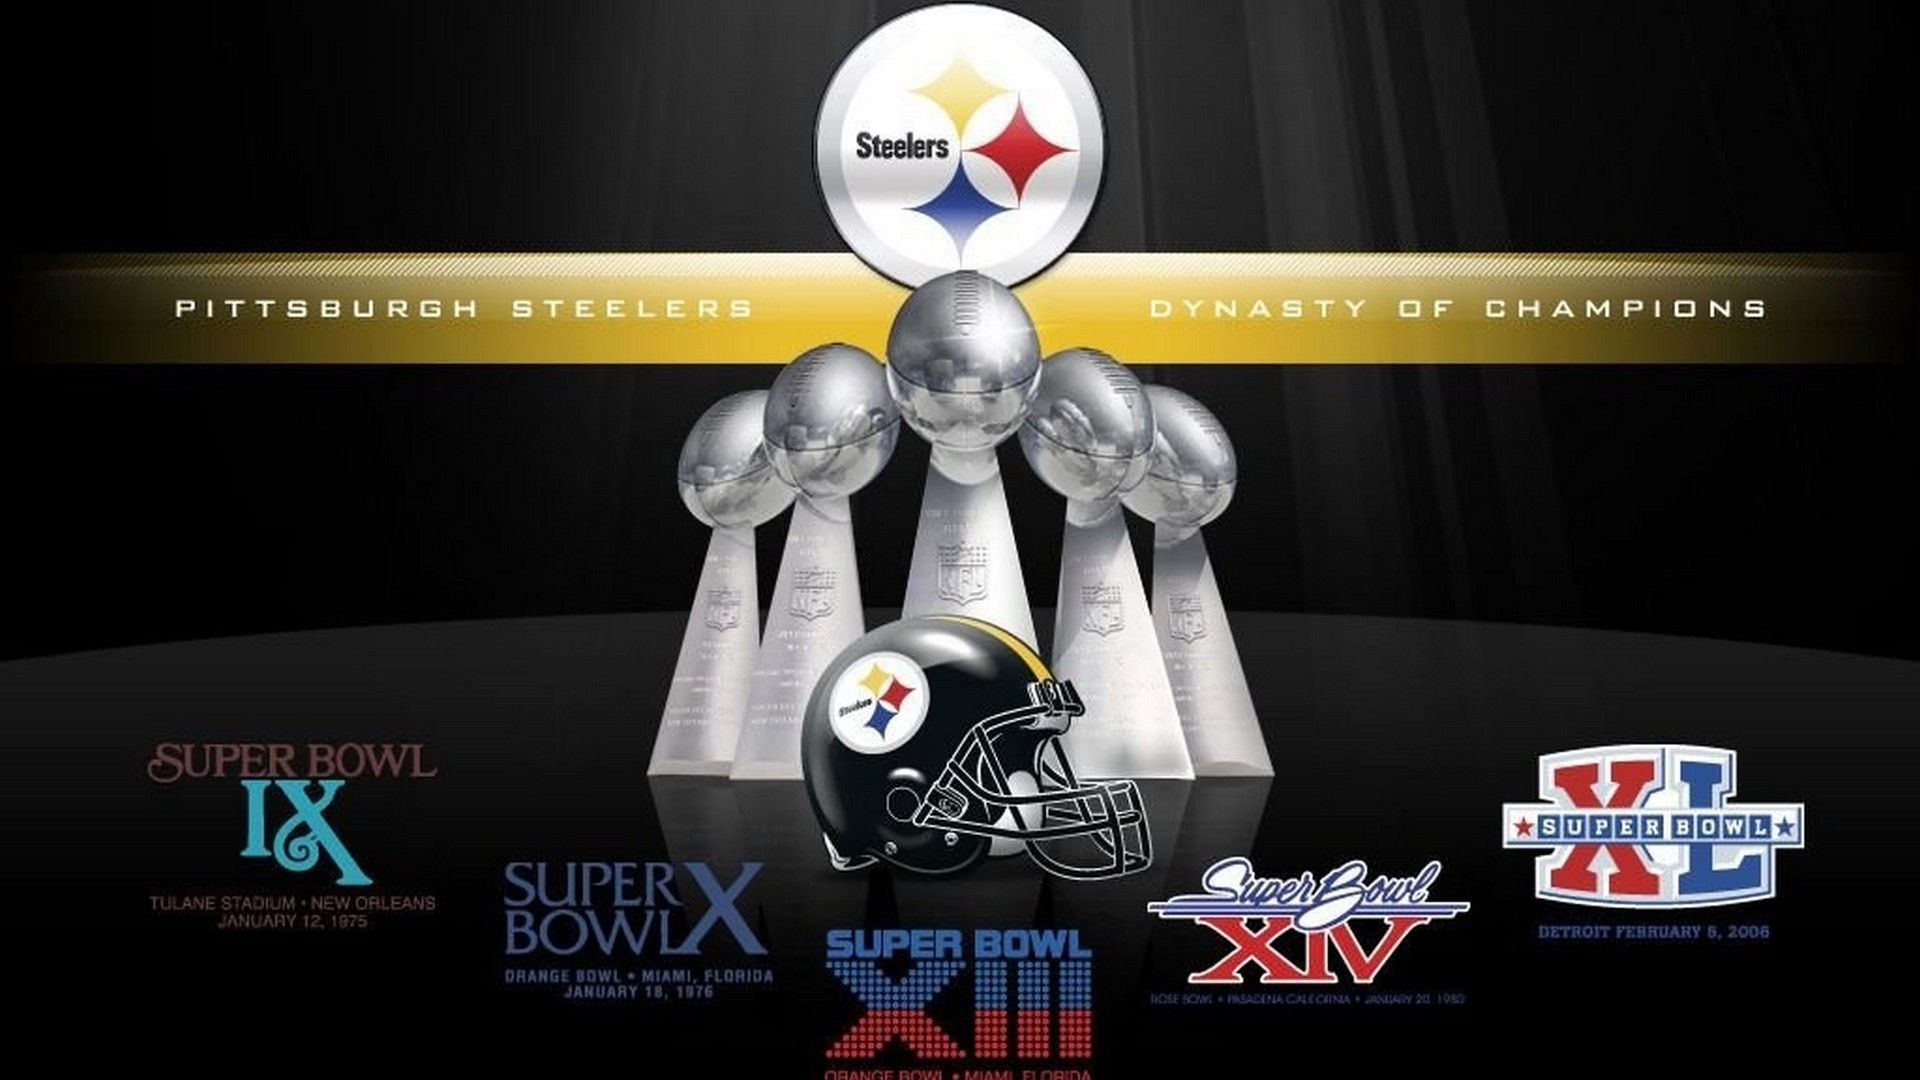 Wallpaper Desktop Pitt Steelers HD Steelers images Pittsburgh 1920x1080